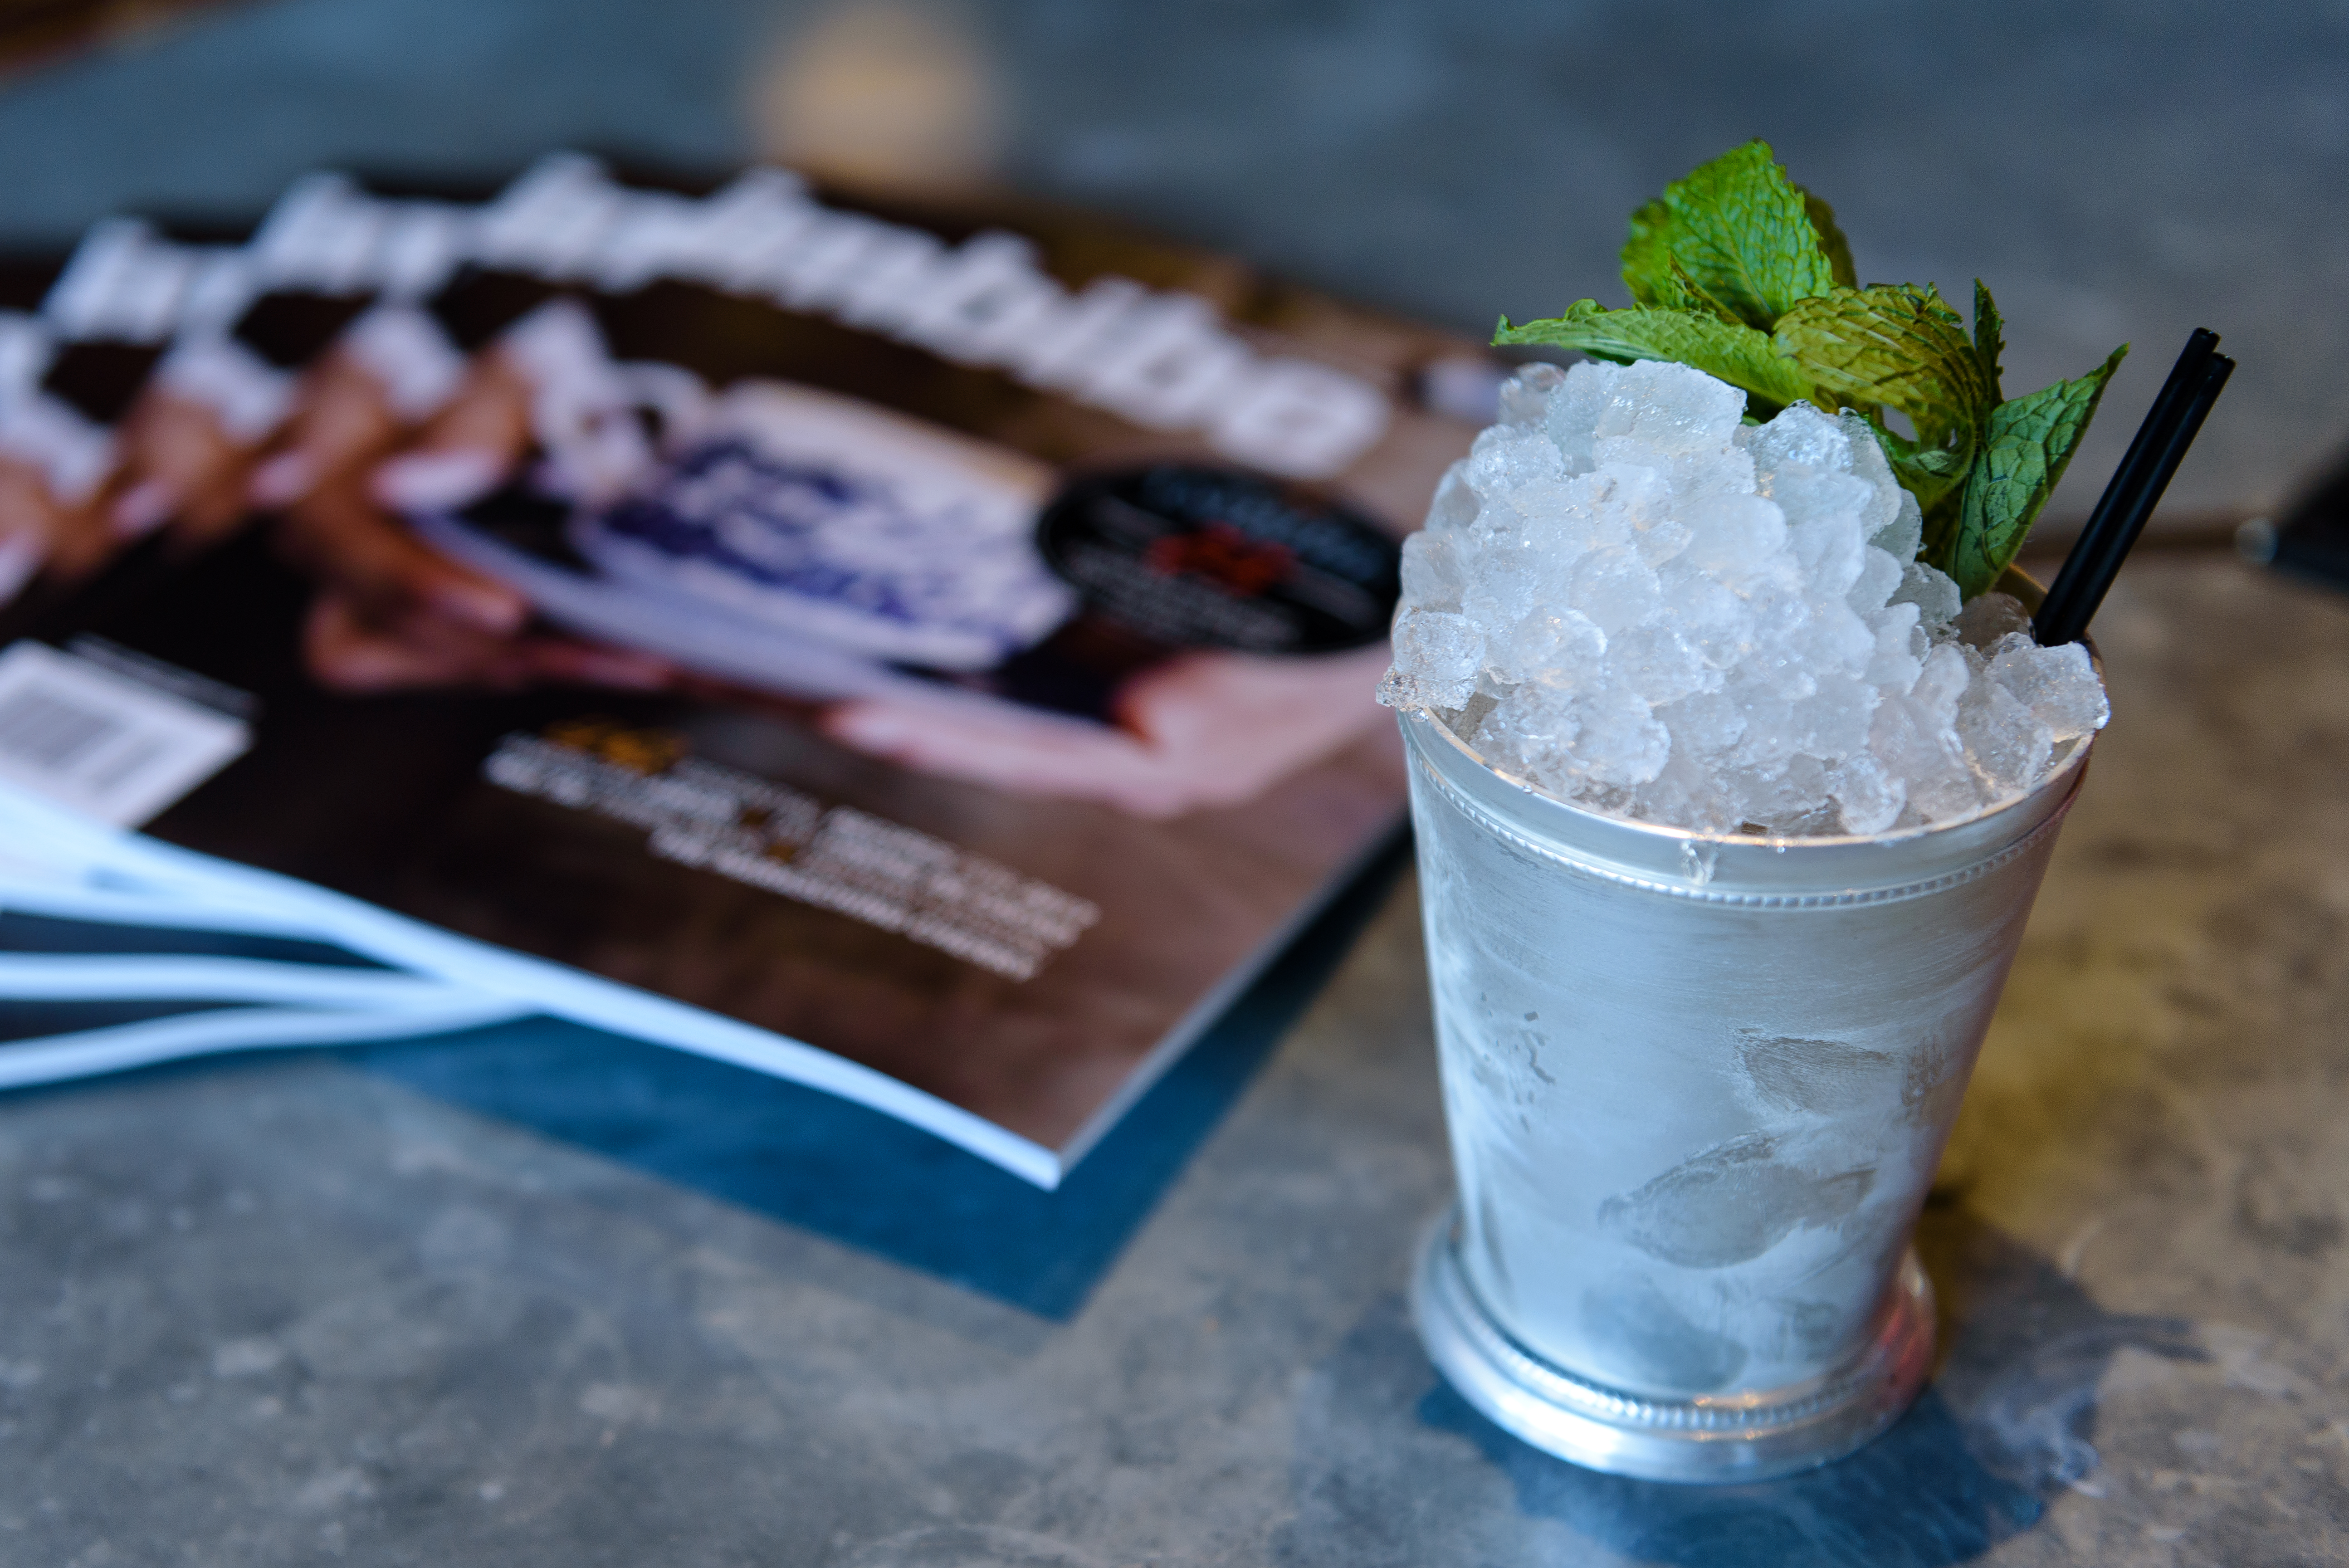 A Mint Julep at the Ice Age of Mixology session.   Photo by Robert Donovan, courtesy of Charleston Wine + Food